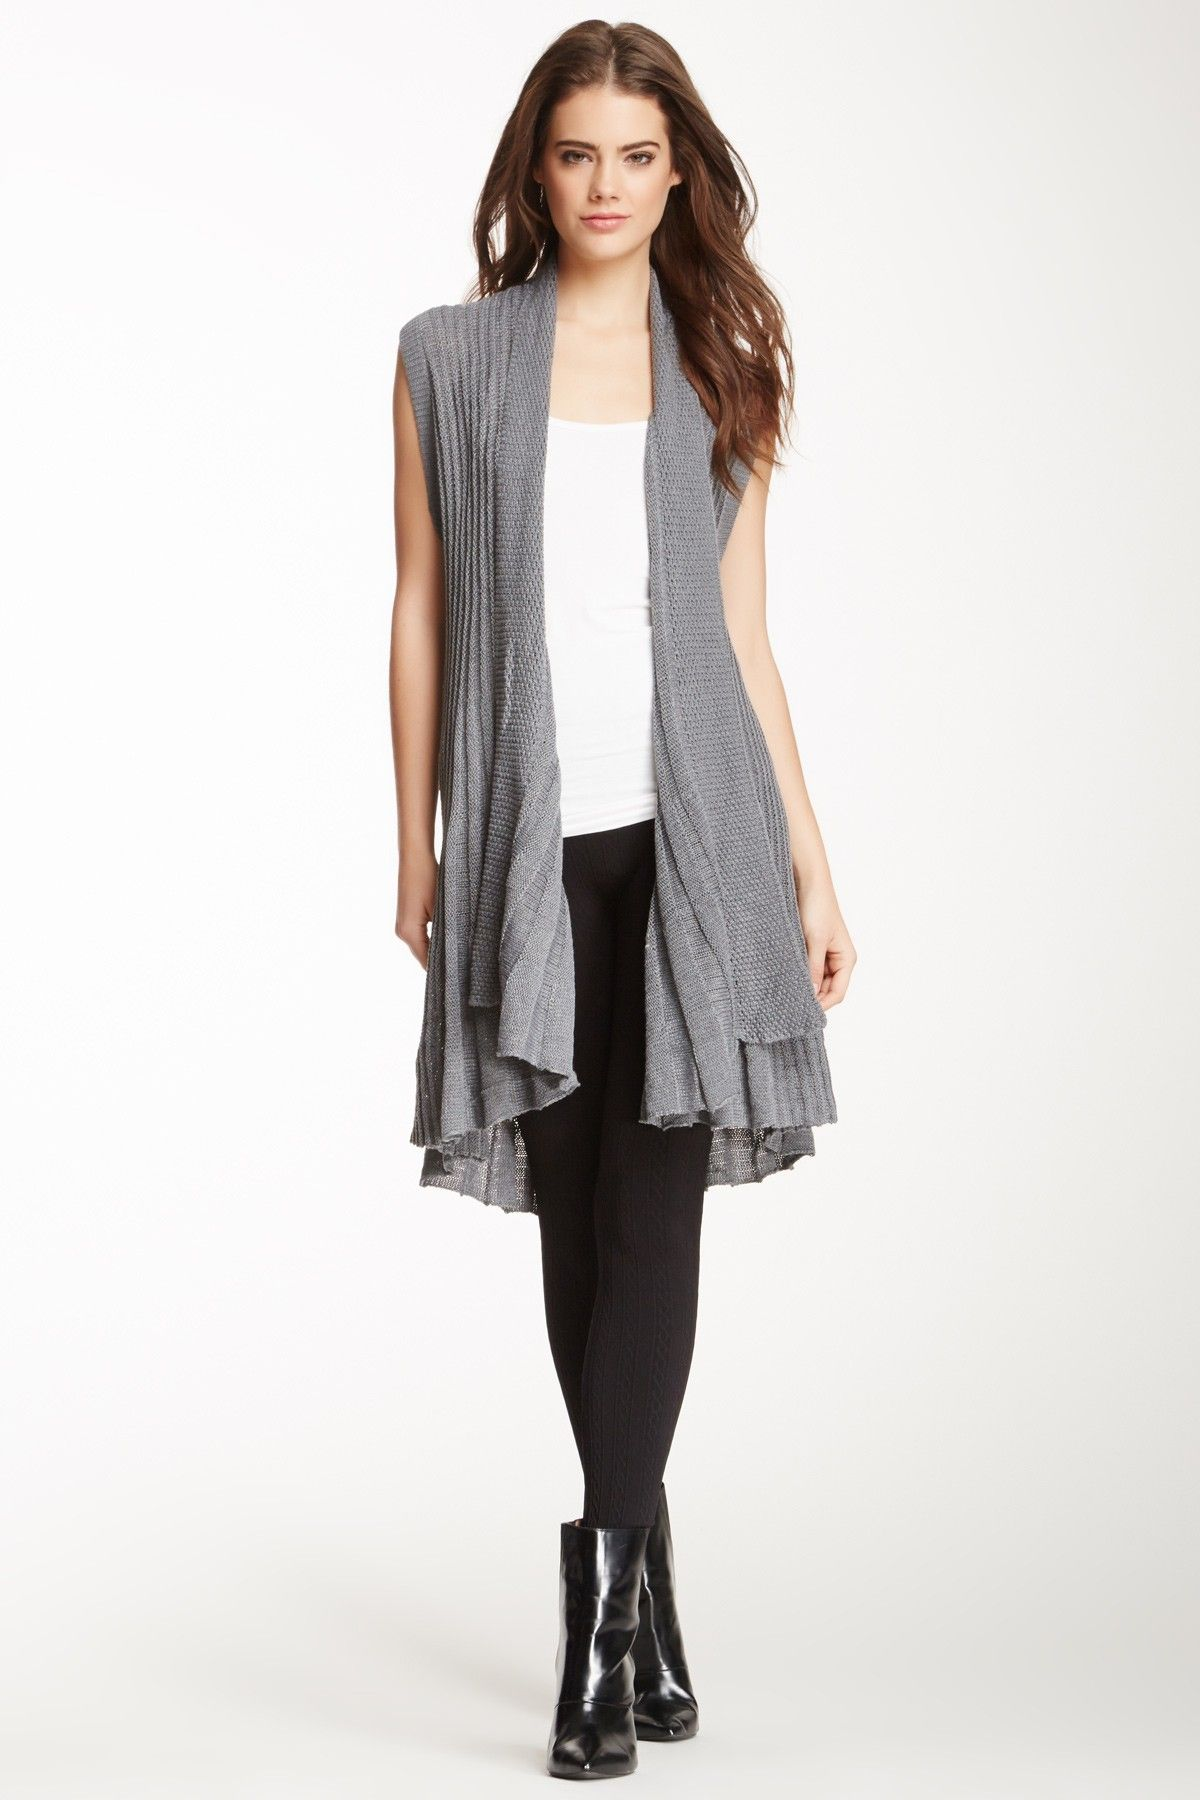 Papillon Draped Knit Sleeveless Cardigan @Pascale Lemay De Groof ...